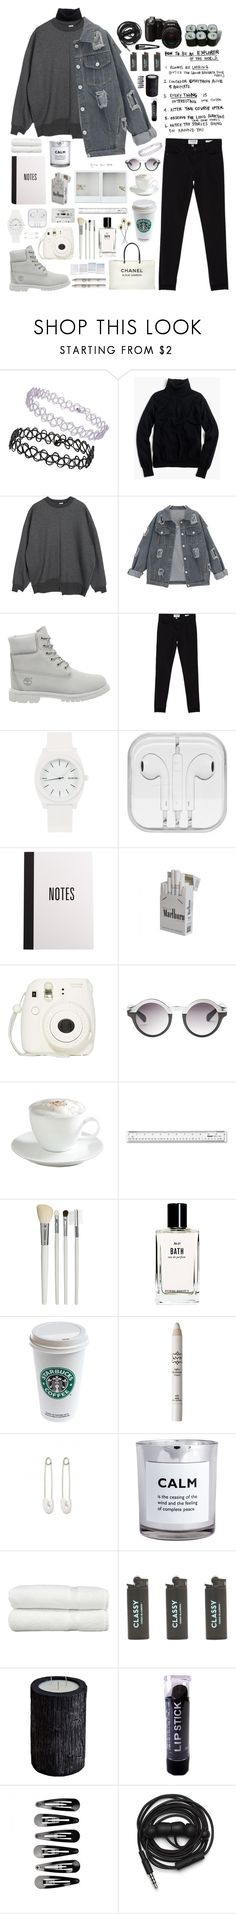 """""""pressure"""" by neightasha ❤ liked on Polyvore featuring Topshop, J.Crew, Timberland, Frame, Nixon, Fujifilm, Monki, CASSETTE, Sur La Table and Cath Kidston"""